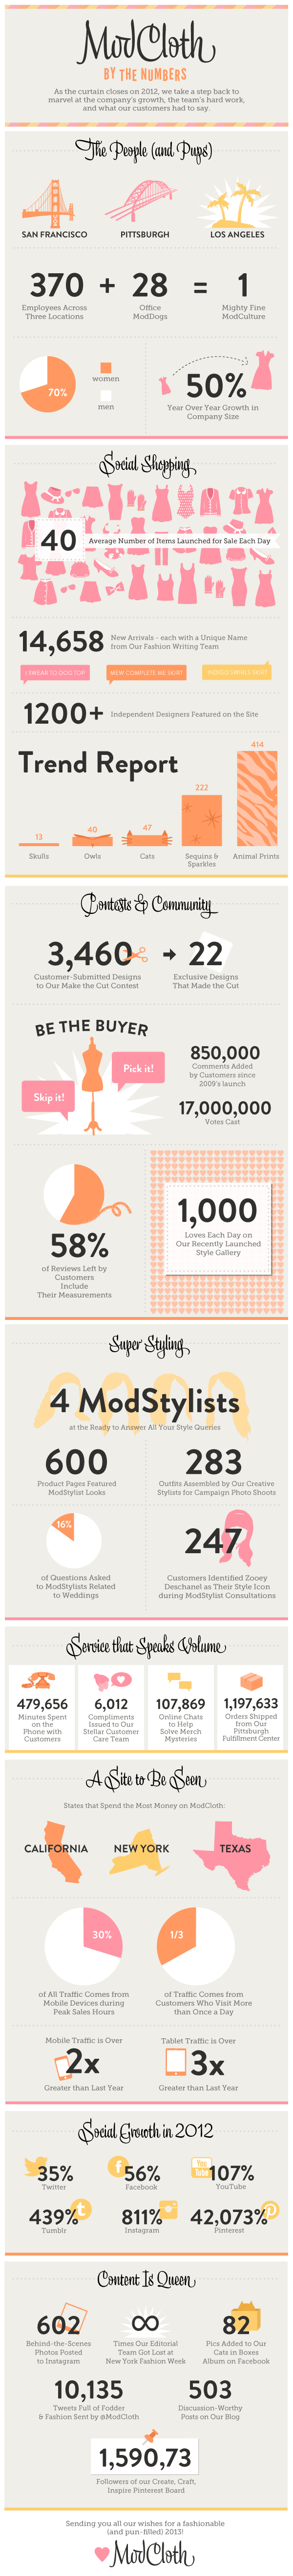 modcloth yearinreview final ModCloths 2012 ends shipping 1.2m orders, now with 1,200 featured designers, holiday requests up 52%